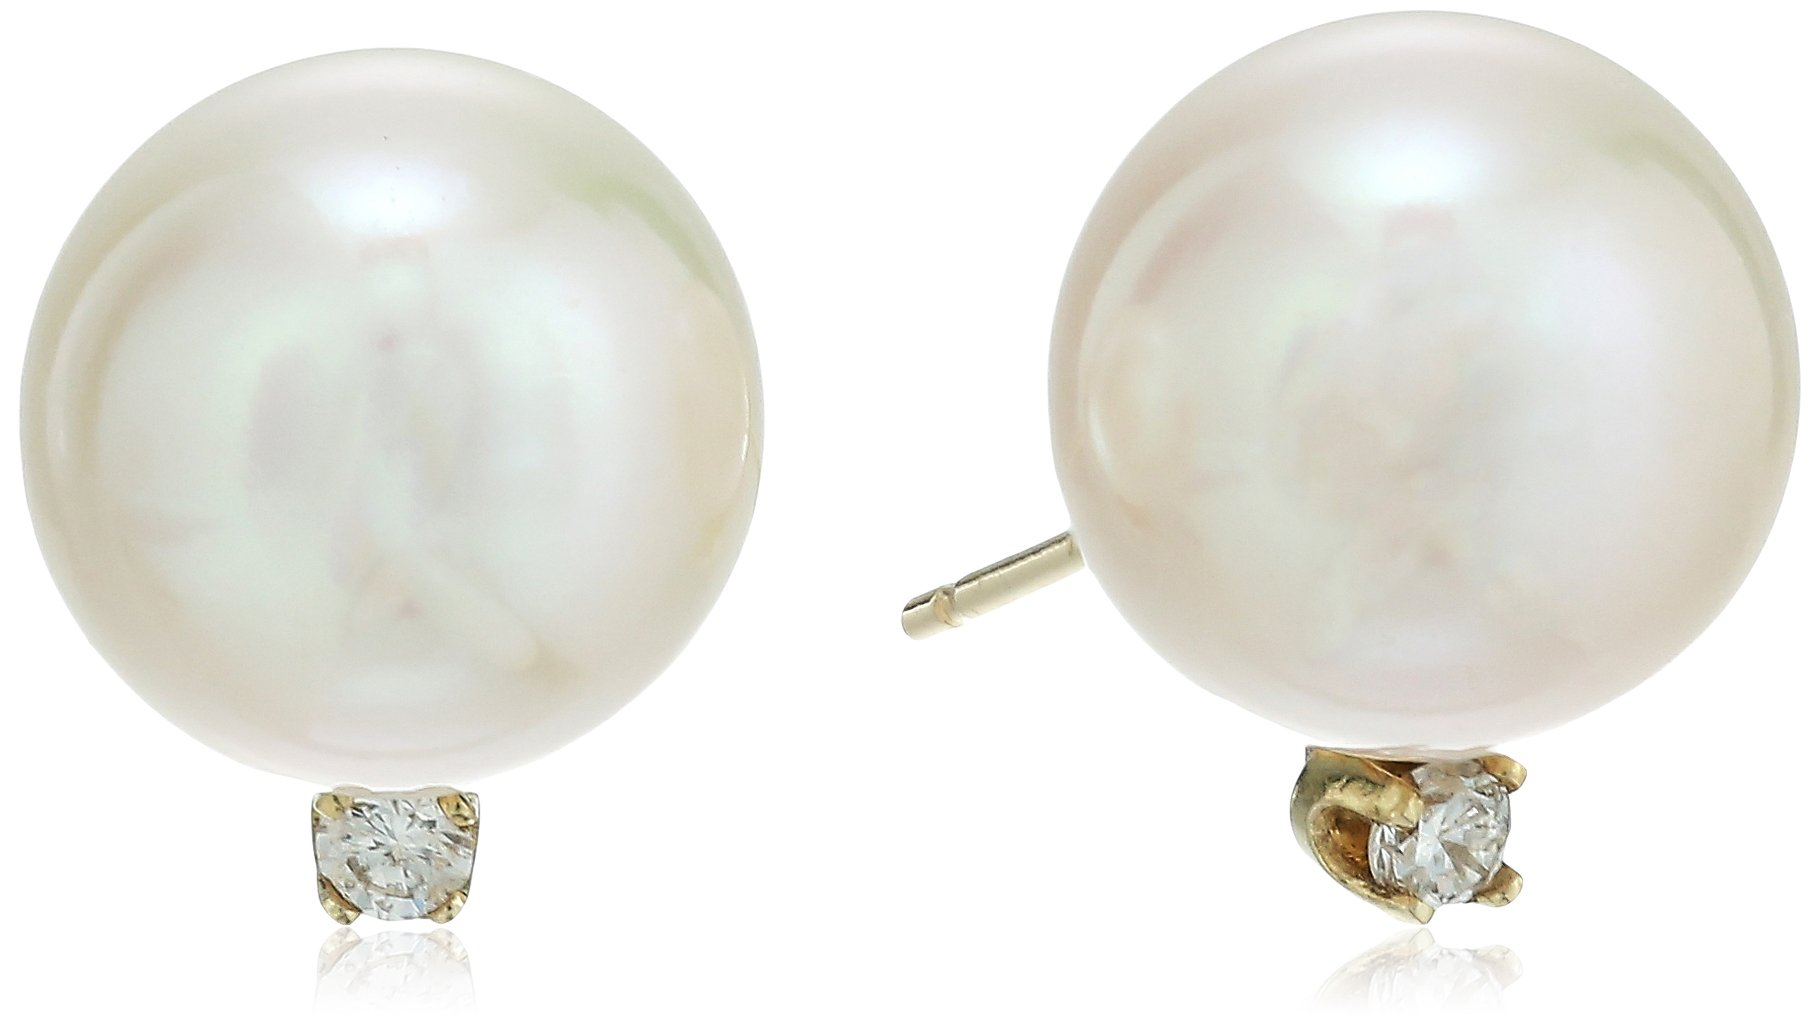 14k Yellow Gold Diamond with 10-10.5mm Round White Freshwater Cultured Pearl Stud Earrings (1/10 cttw, G-H Color, SI1-SI2 Clarity)